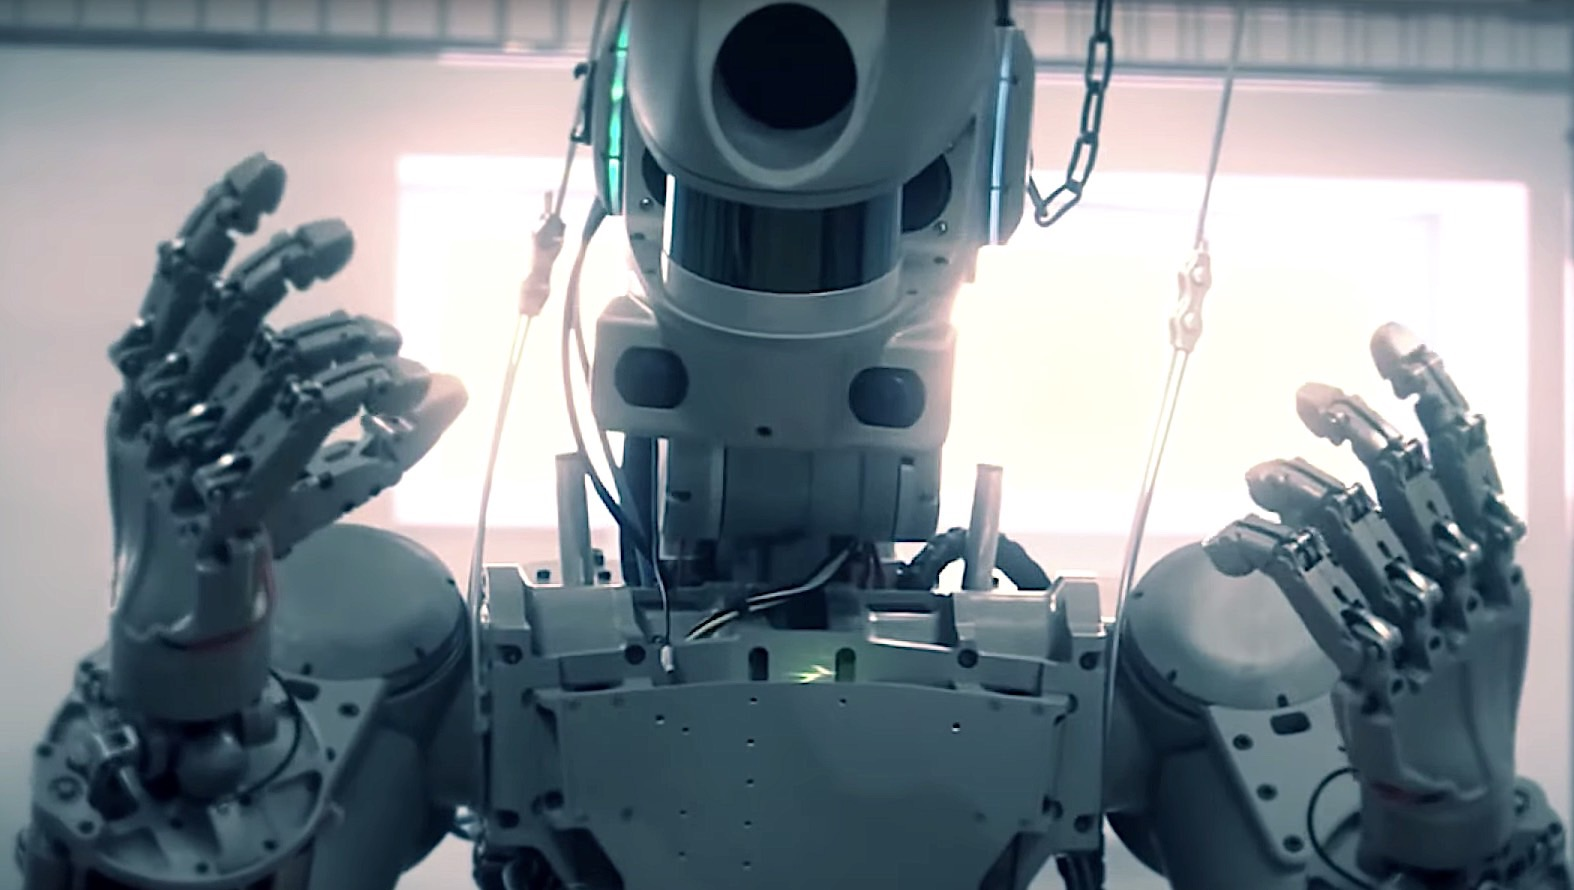 Russia Sends Humanoid Robot to Space Station in Rocket Test Flight